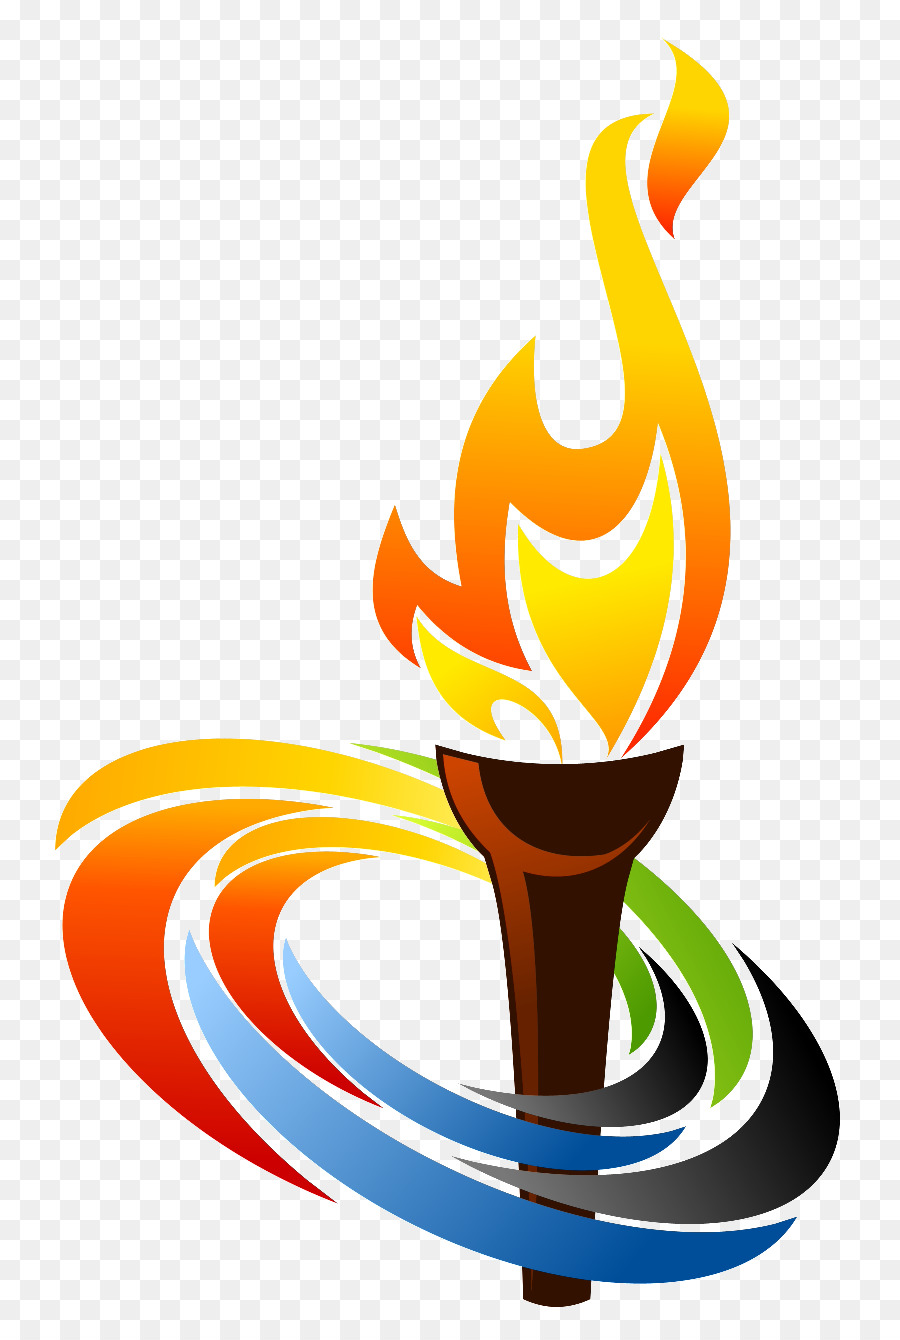 winter olympic games 2016 summer olympics 2018 winter olympics torch rh kisspng com winter olympic clip art winter olympic sports clipart